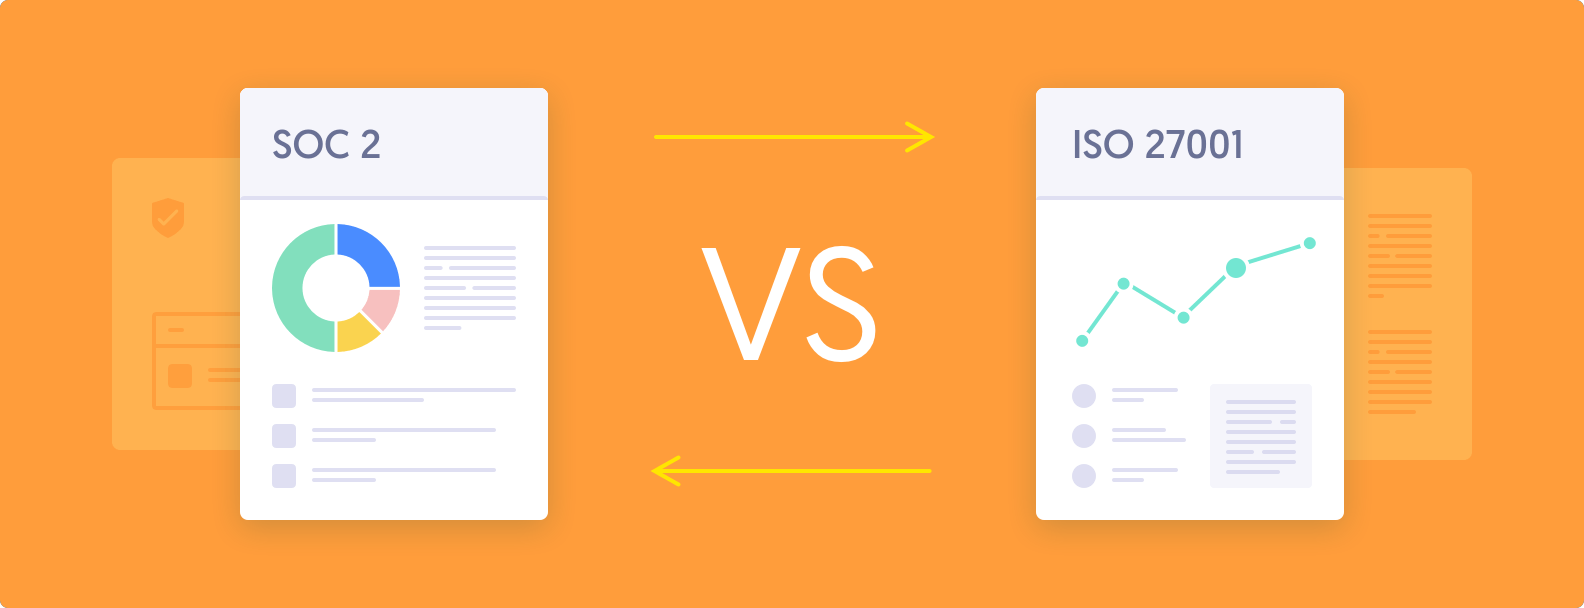 SOC 2 vs. ISO 27001: Similarities, Differences, and Benefits of Each